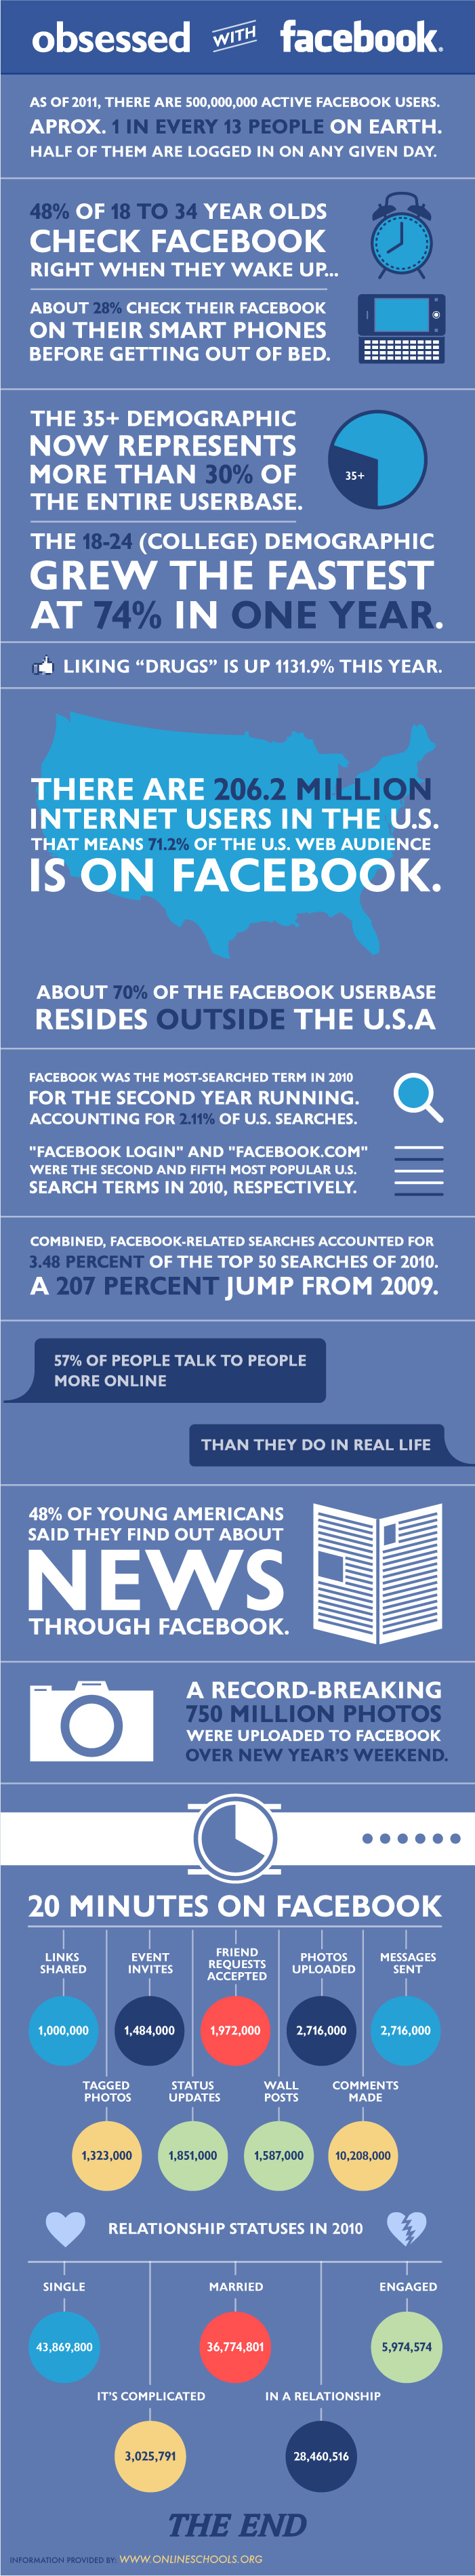 World's Too Much Obsession With Facebook [INFOGRAPHIC]